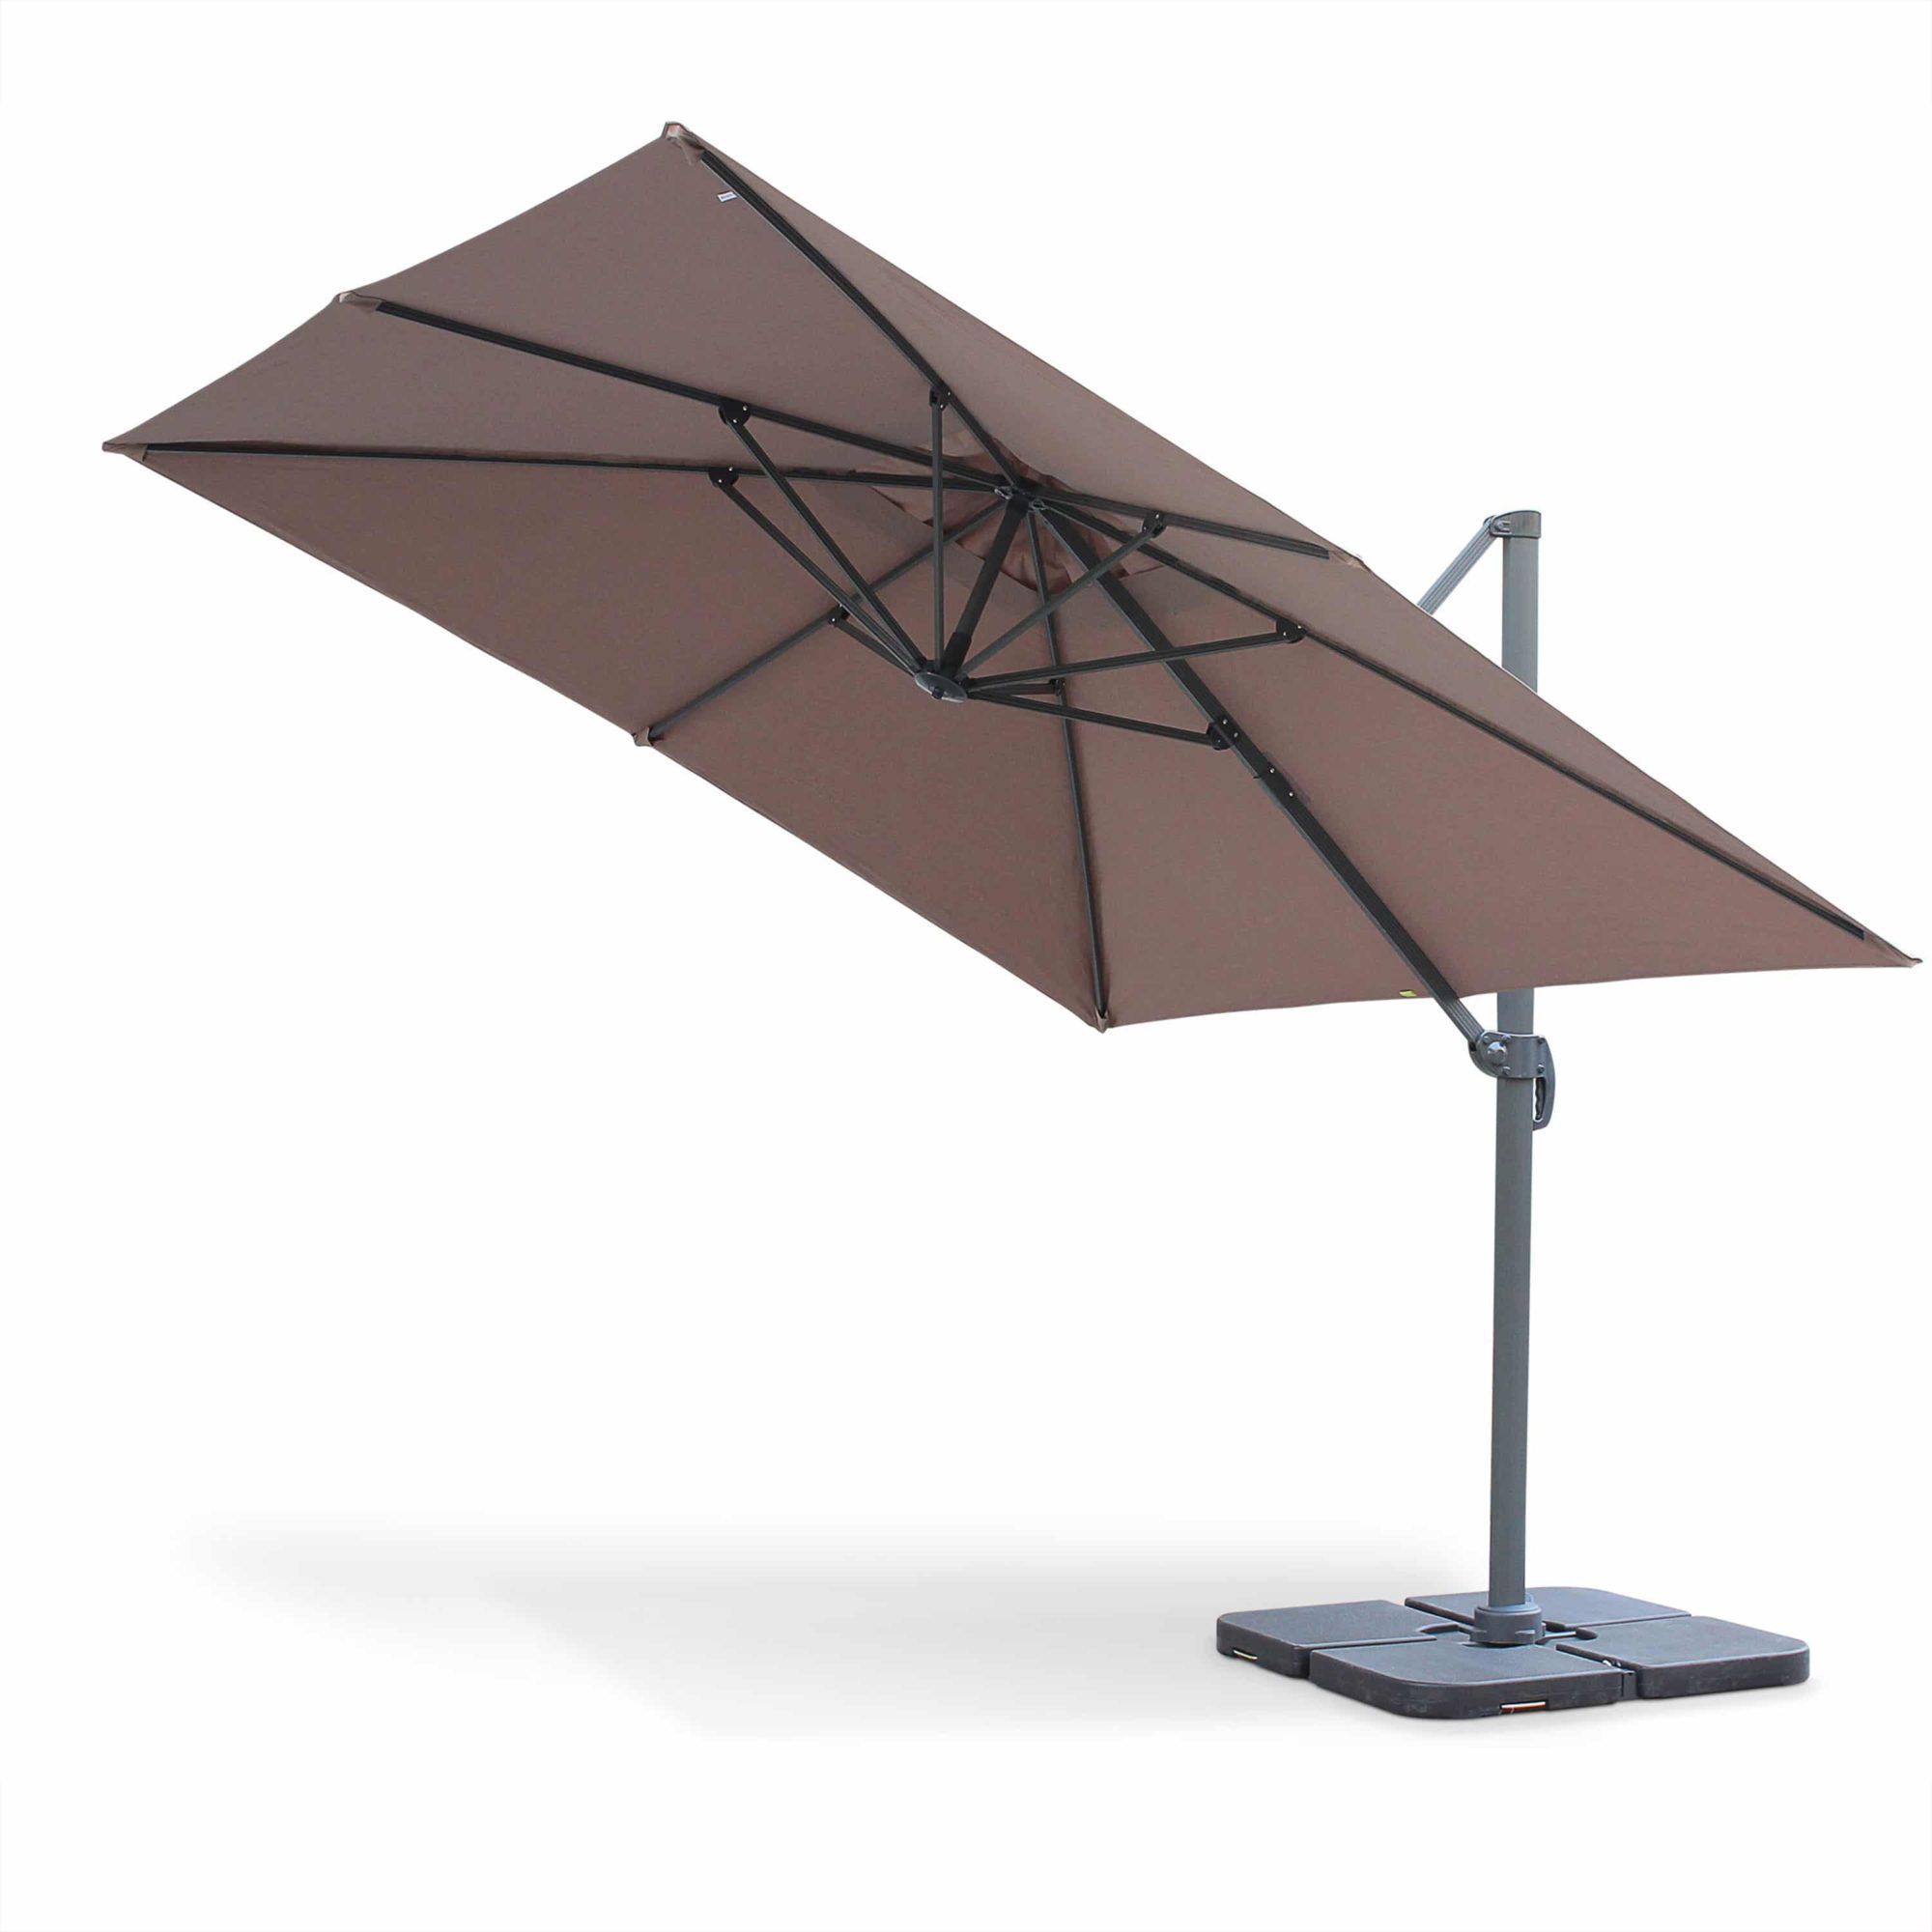 Cantilever Outdoor Umbrella Parasol 3x3m in Aluminium Taupe Brown